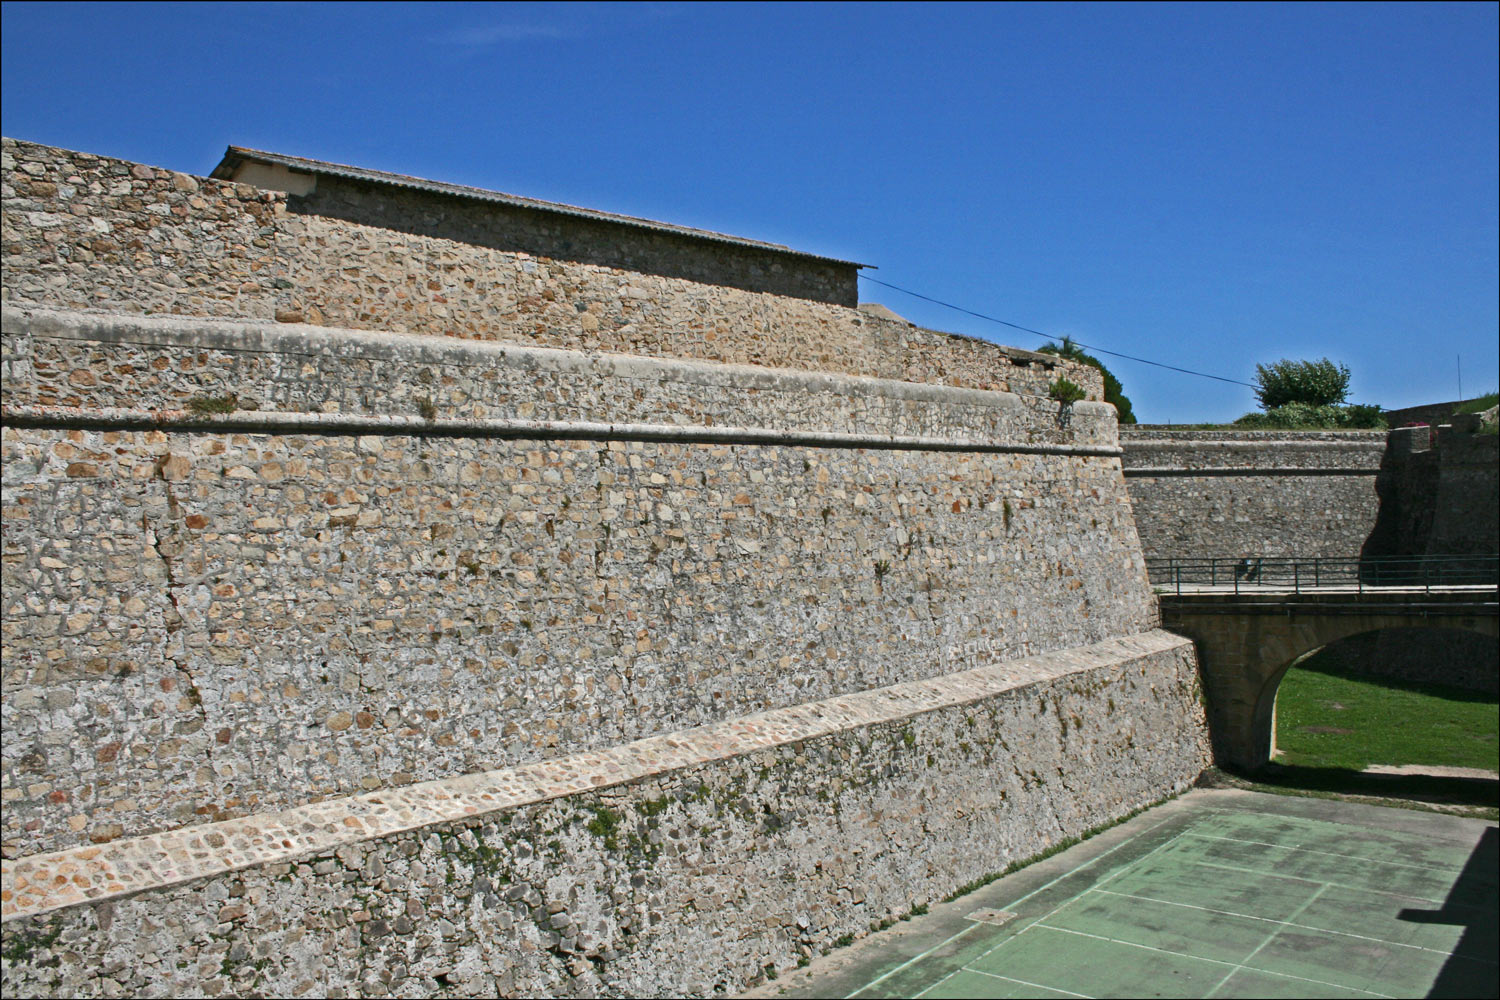 Wall of the Citadel in Ajaccio